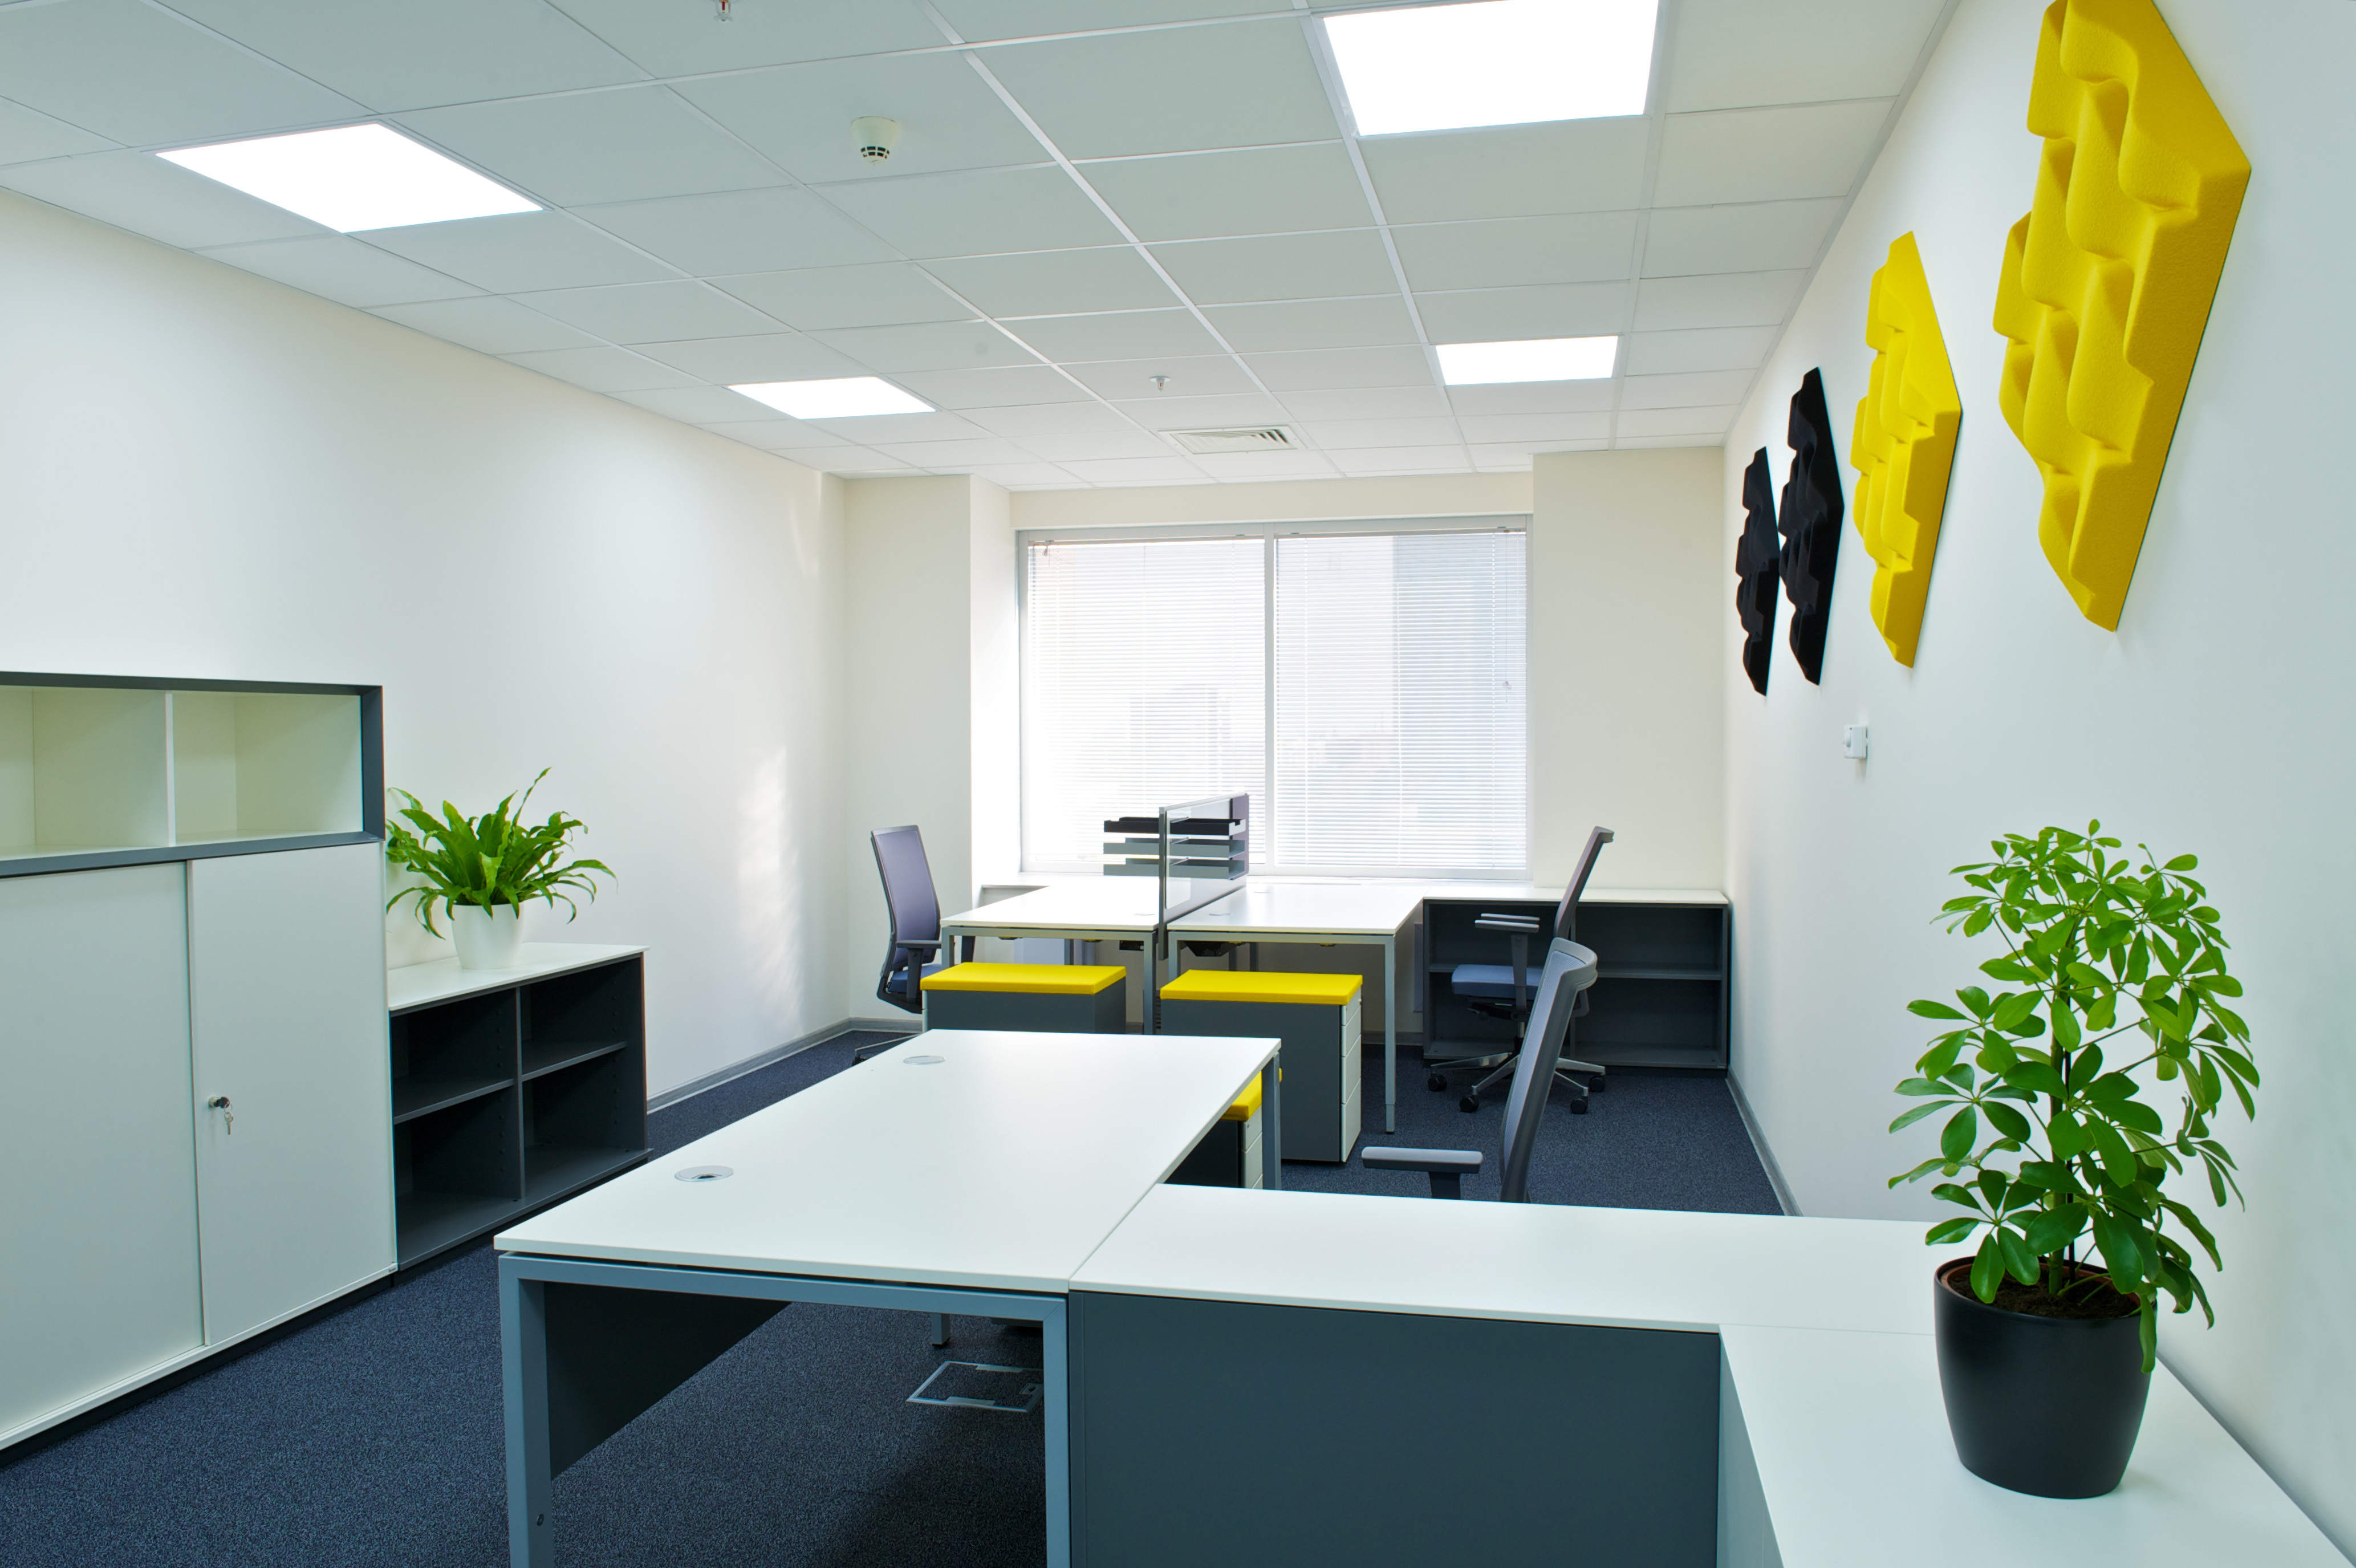 48 watt square LED lighting for offices with Redilight solar powered lighting solution